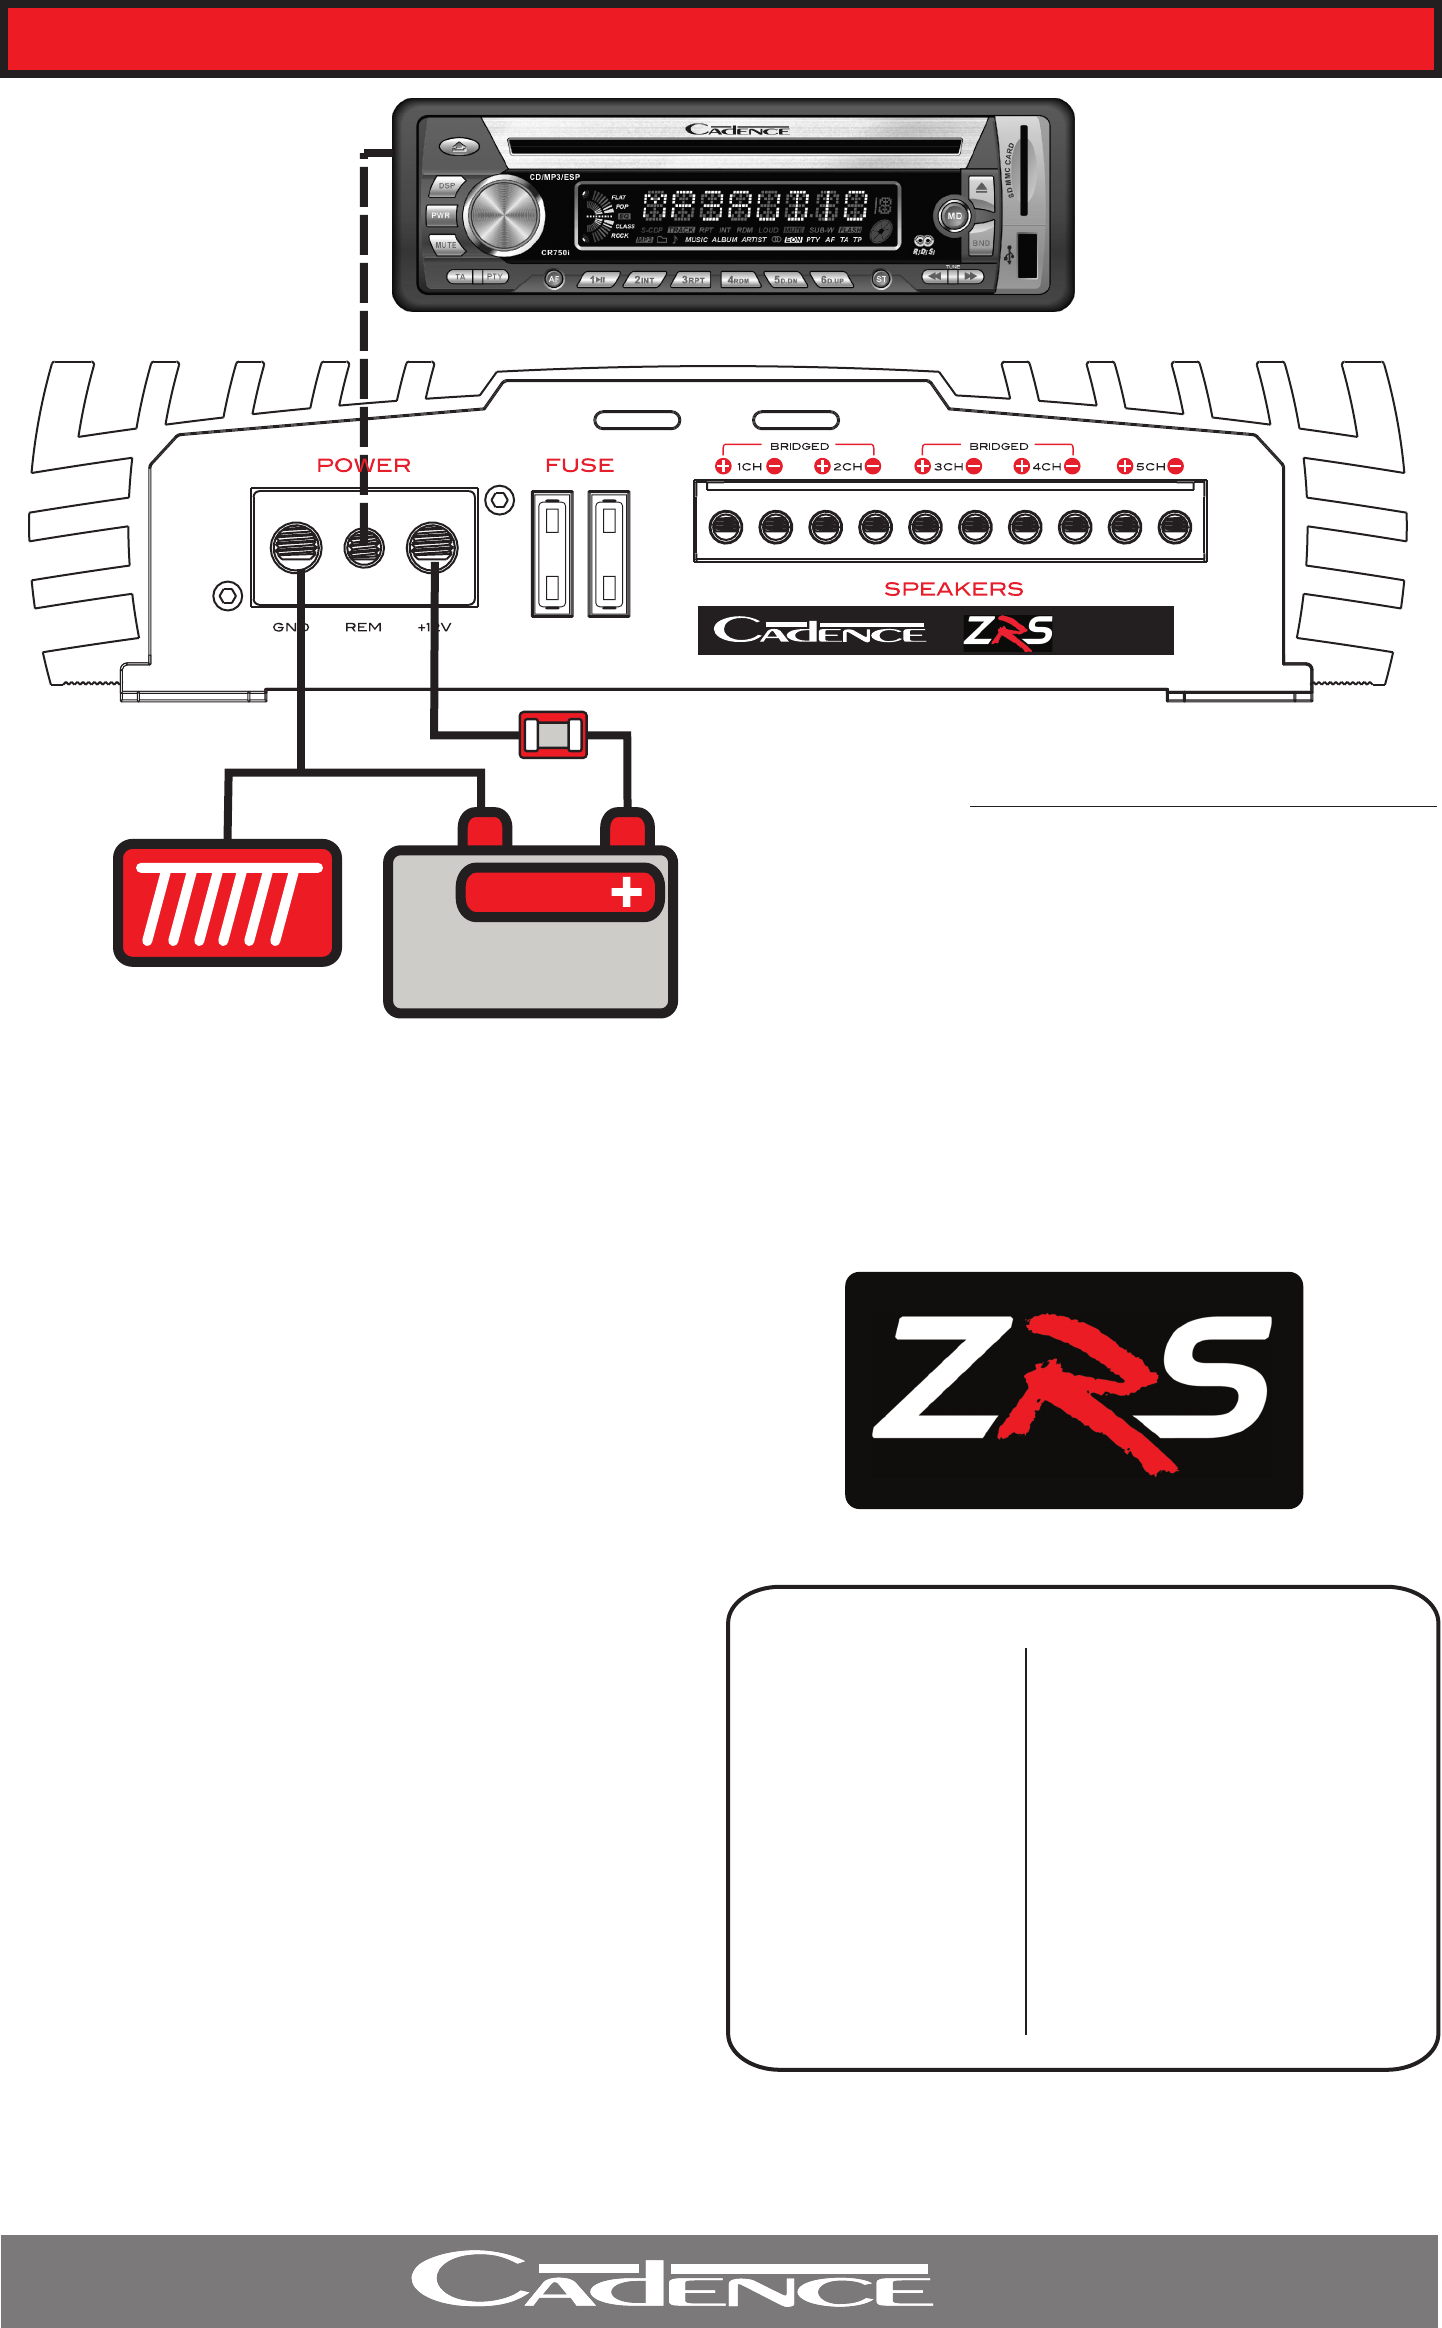 ZRS C8 QUICK INSTALLATION GUIDE